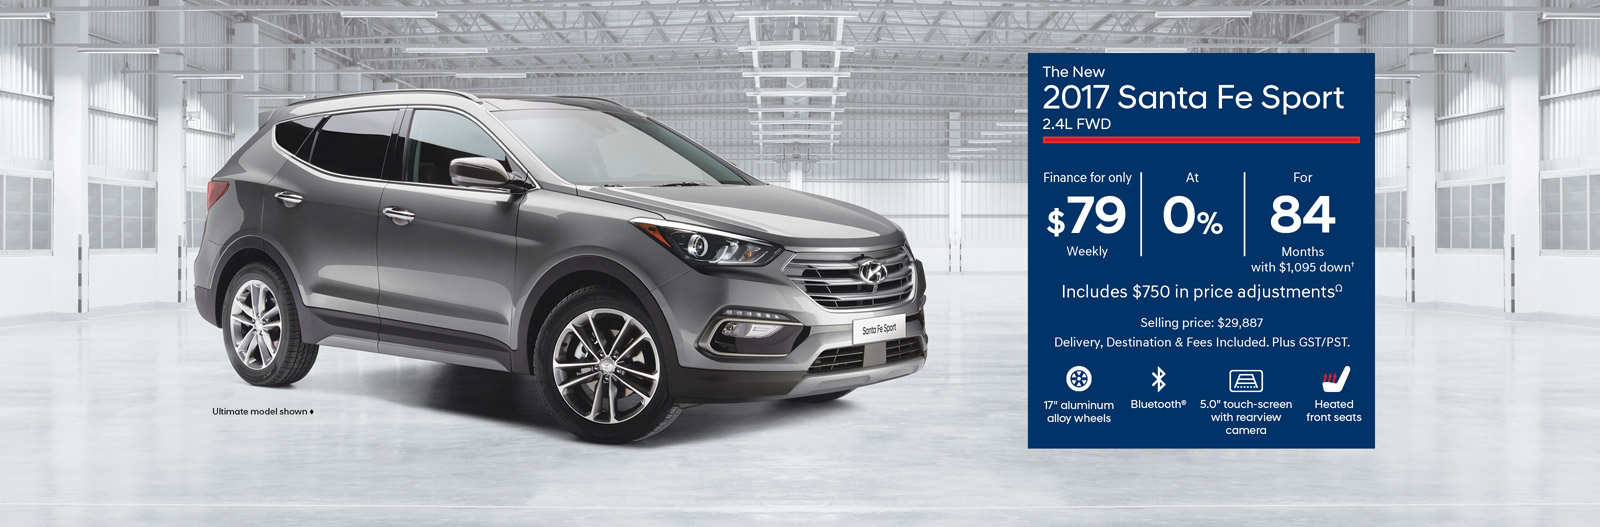 The new 2017 Santa Fe Sport - Finance from $79 Weekly